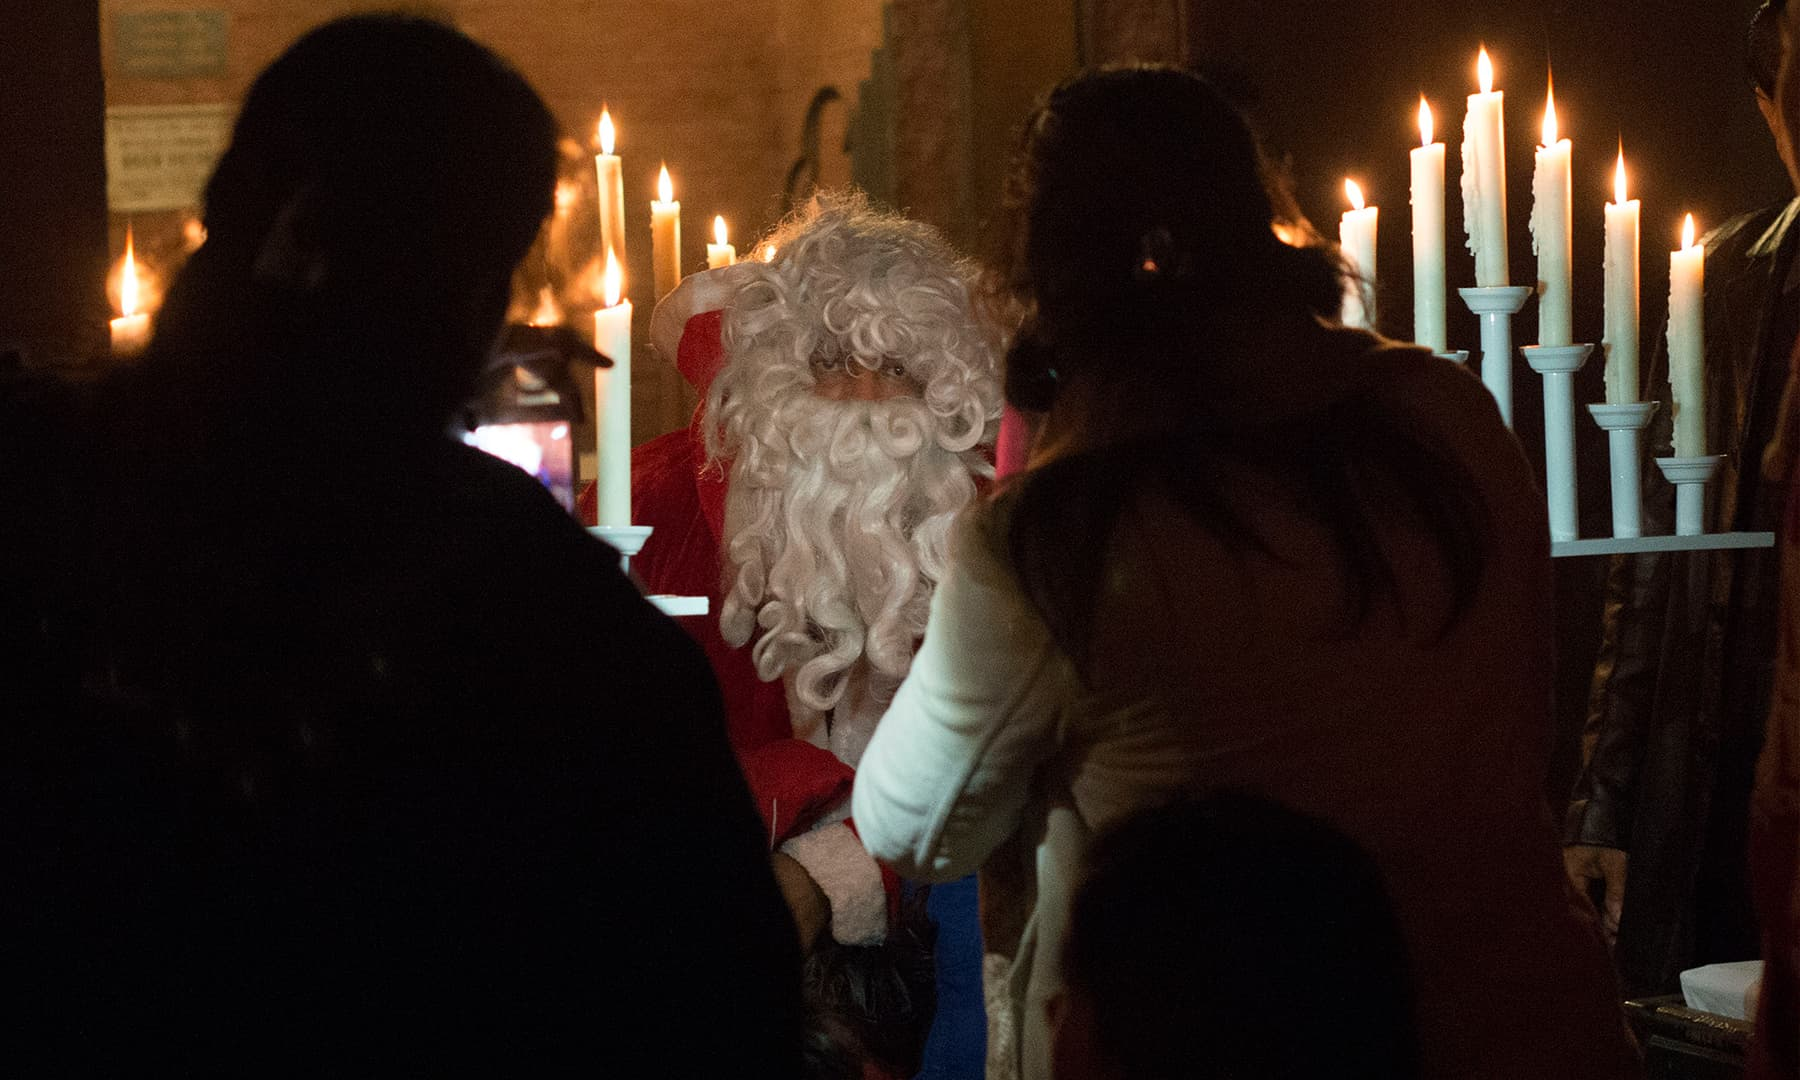 Santa Claus makes an appearance during a pre-Christmas Sunday service | M Arif, White Star